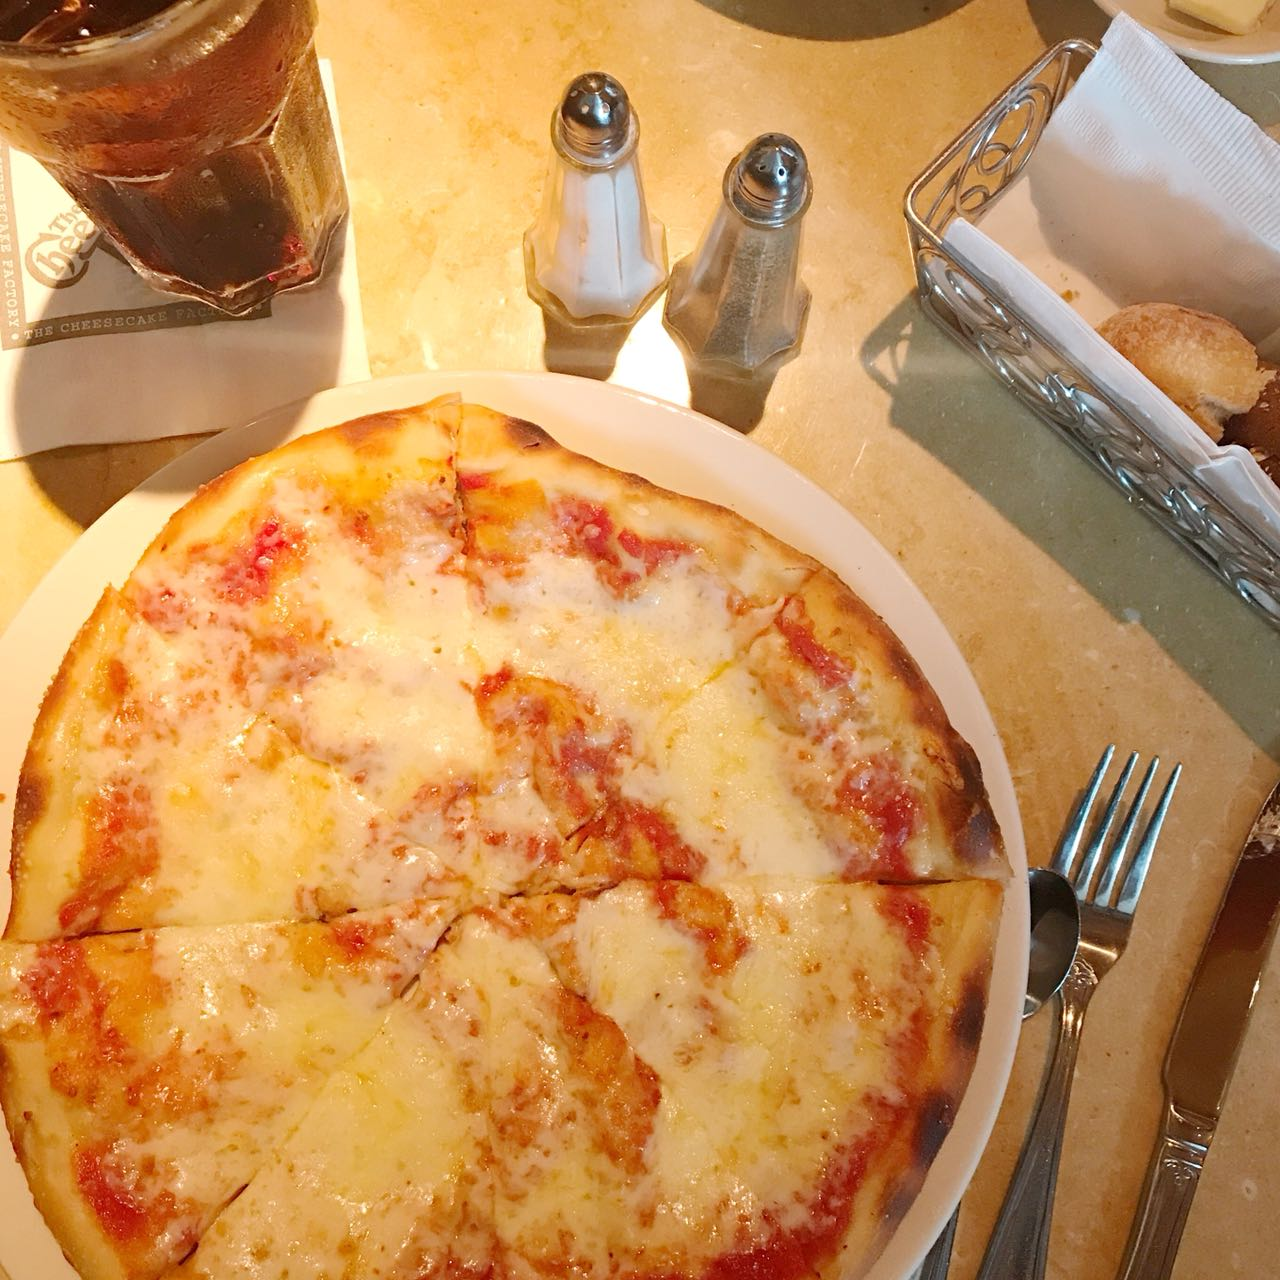 Pizza da Cheesecake Factory no Queens em NYC - Giuli Castro